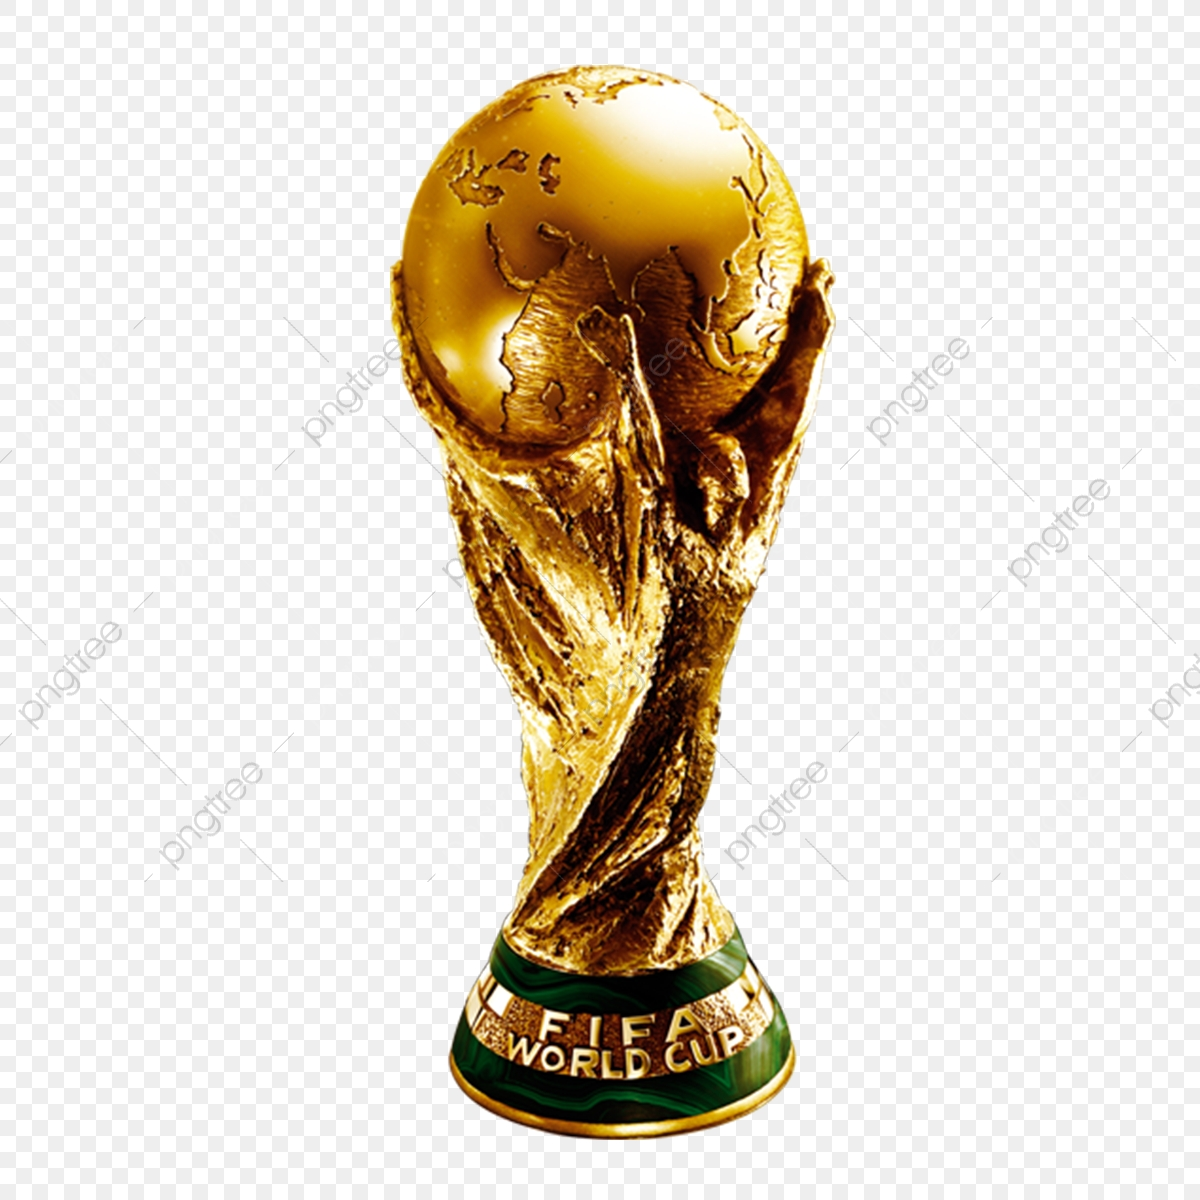 2022 Fifa World Cup, Worldcup, Football, Cr7 PNG Transparent Clipart.